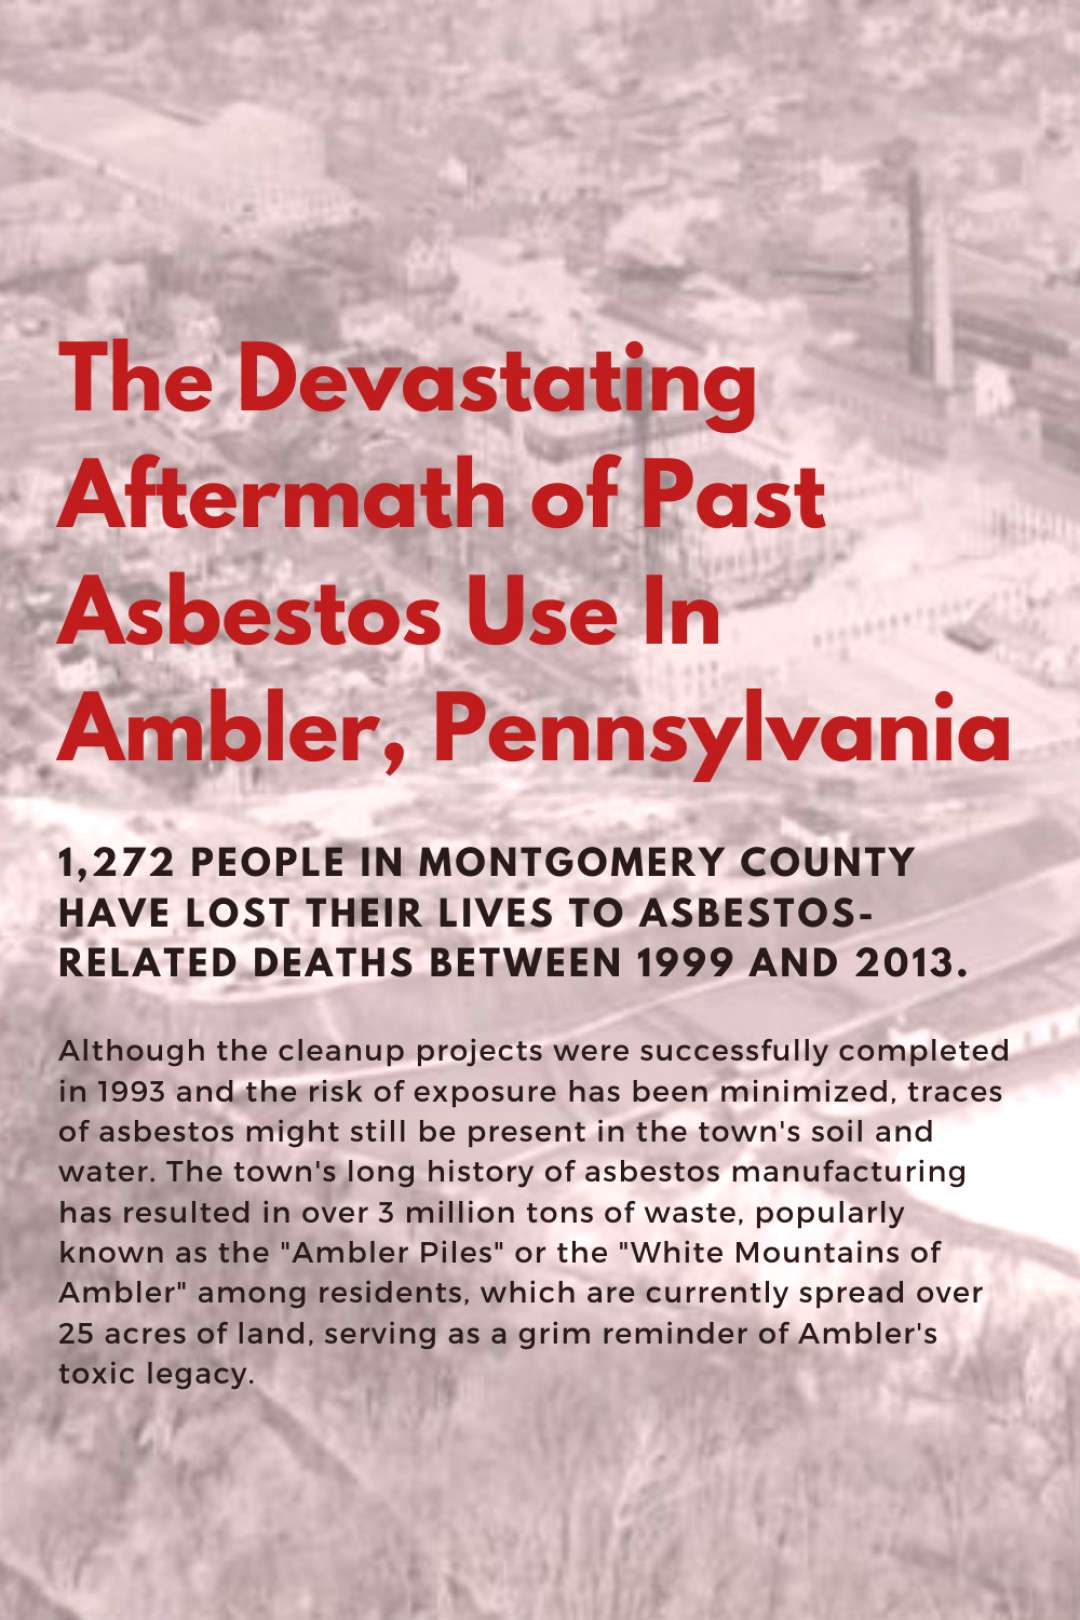 Asbestos Use – Ambler, Pennsylvania Current and former residents of Ambler, Pennsylvania diagnose